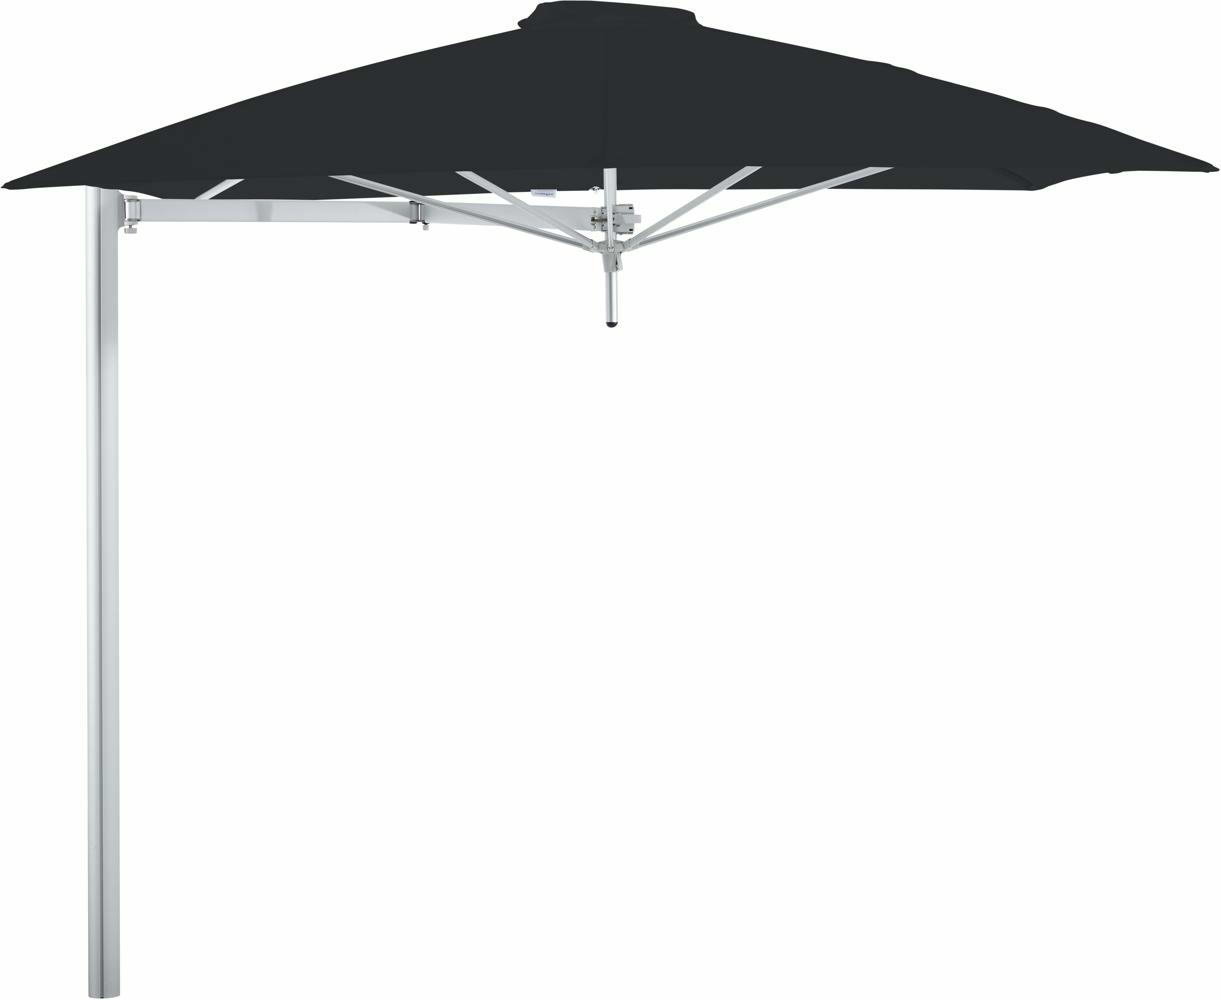 Paraflex cantilever umbrella square 2,3 m with Black fabric and a Neo arm